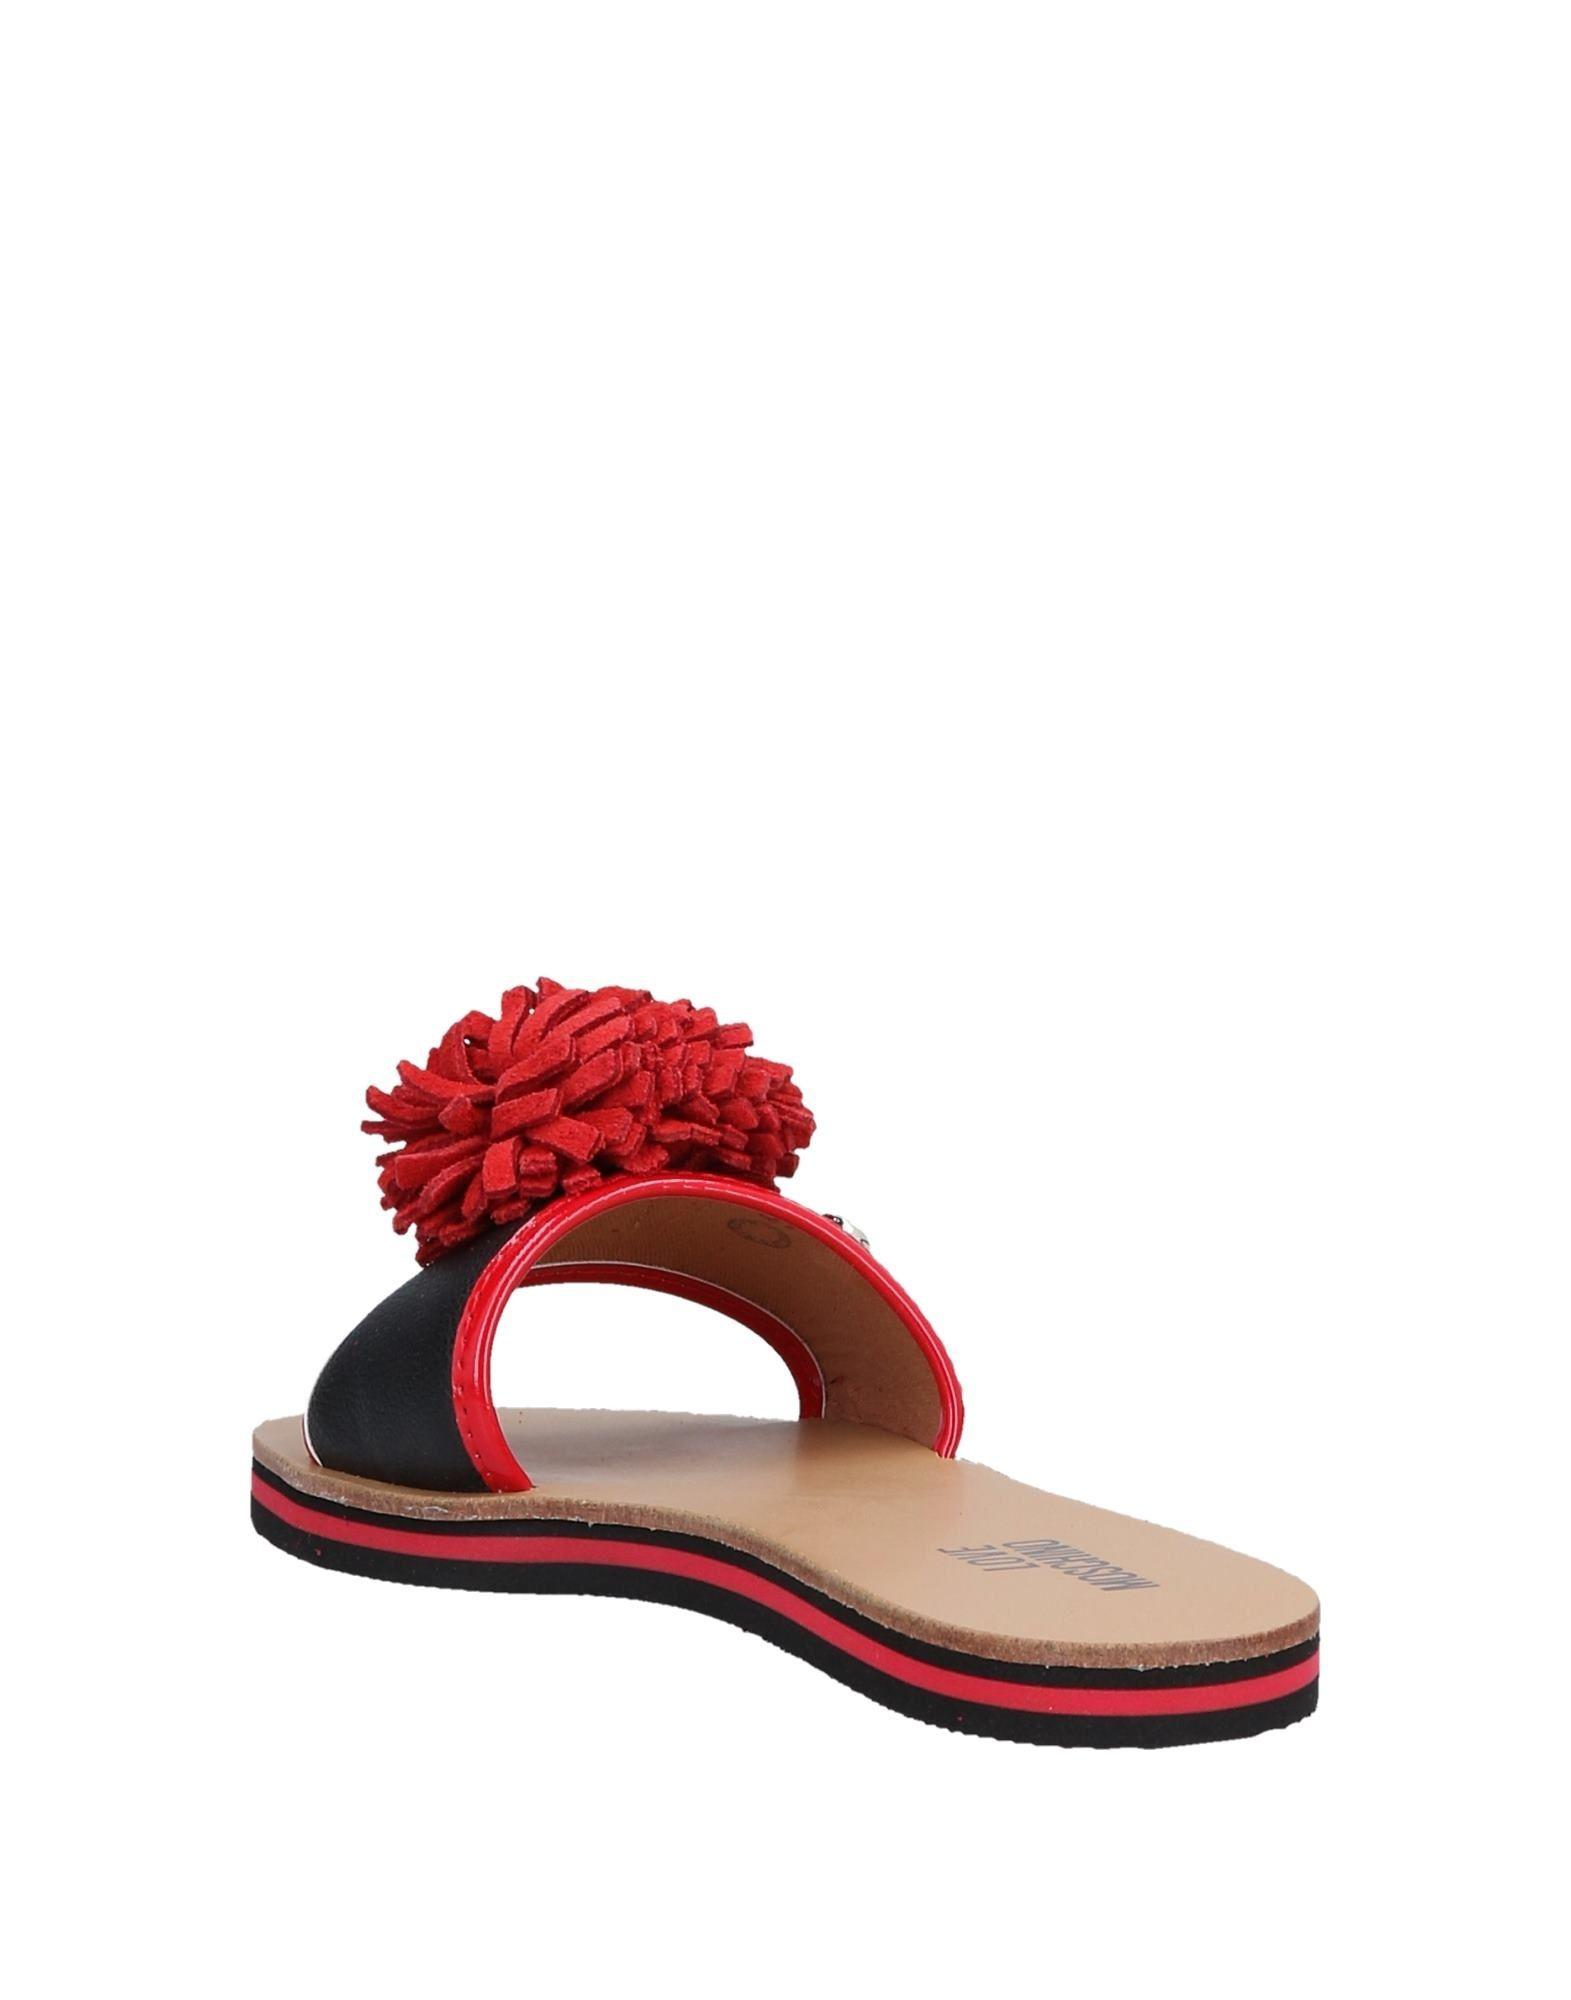 550c35a7a4c7 Lyst - Love Moschino Sandals in Black